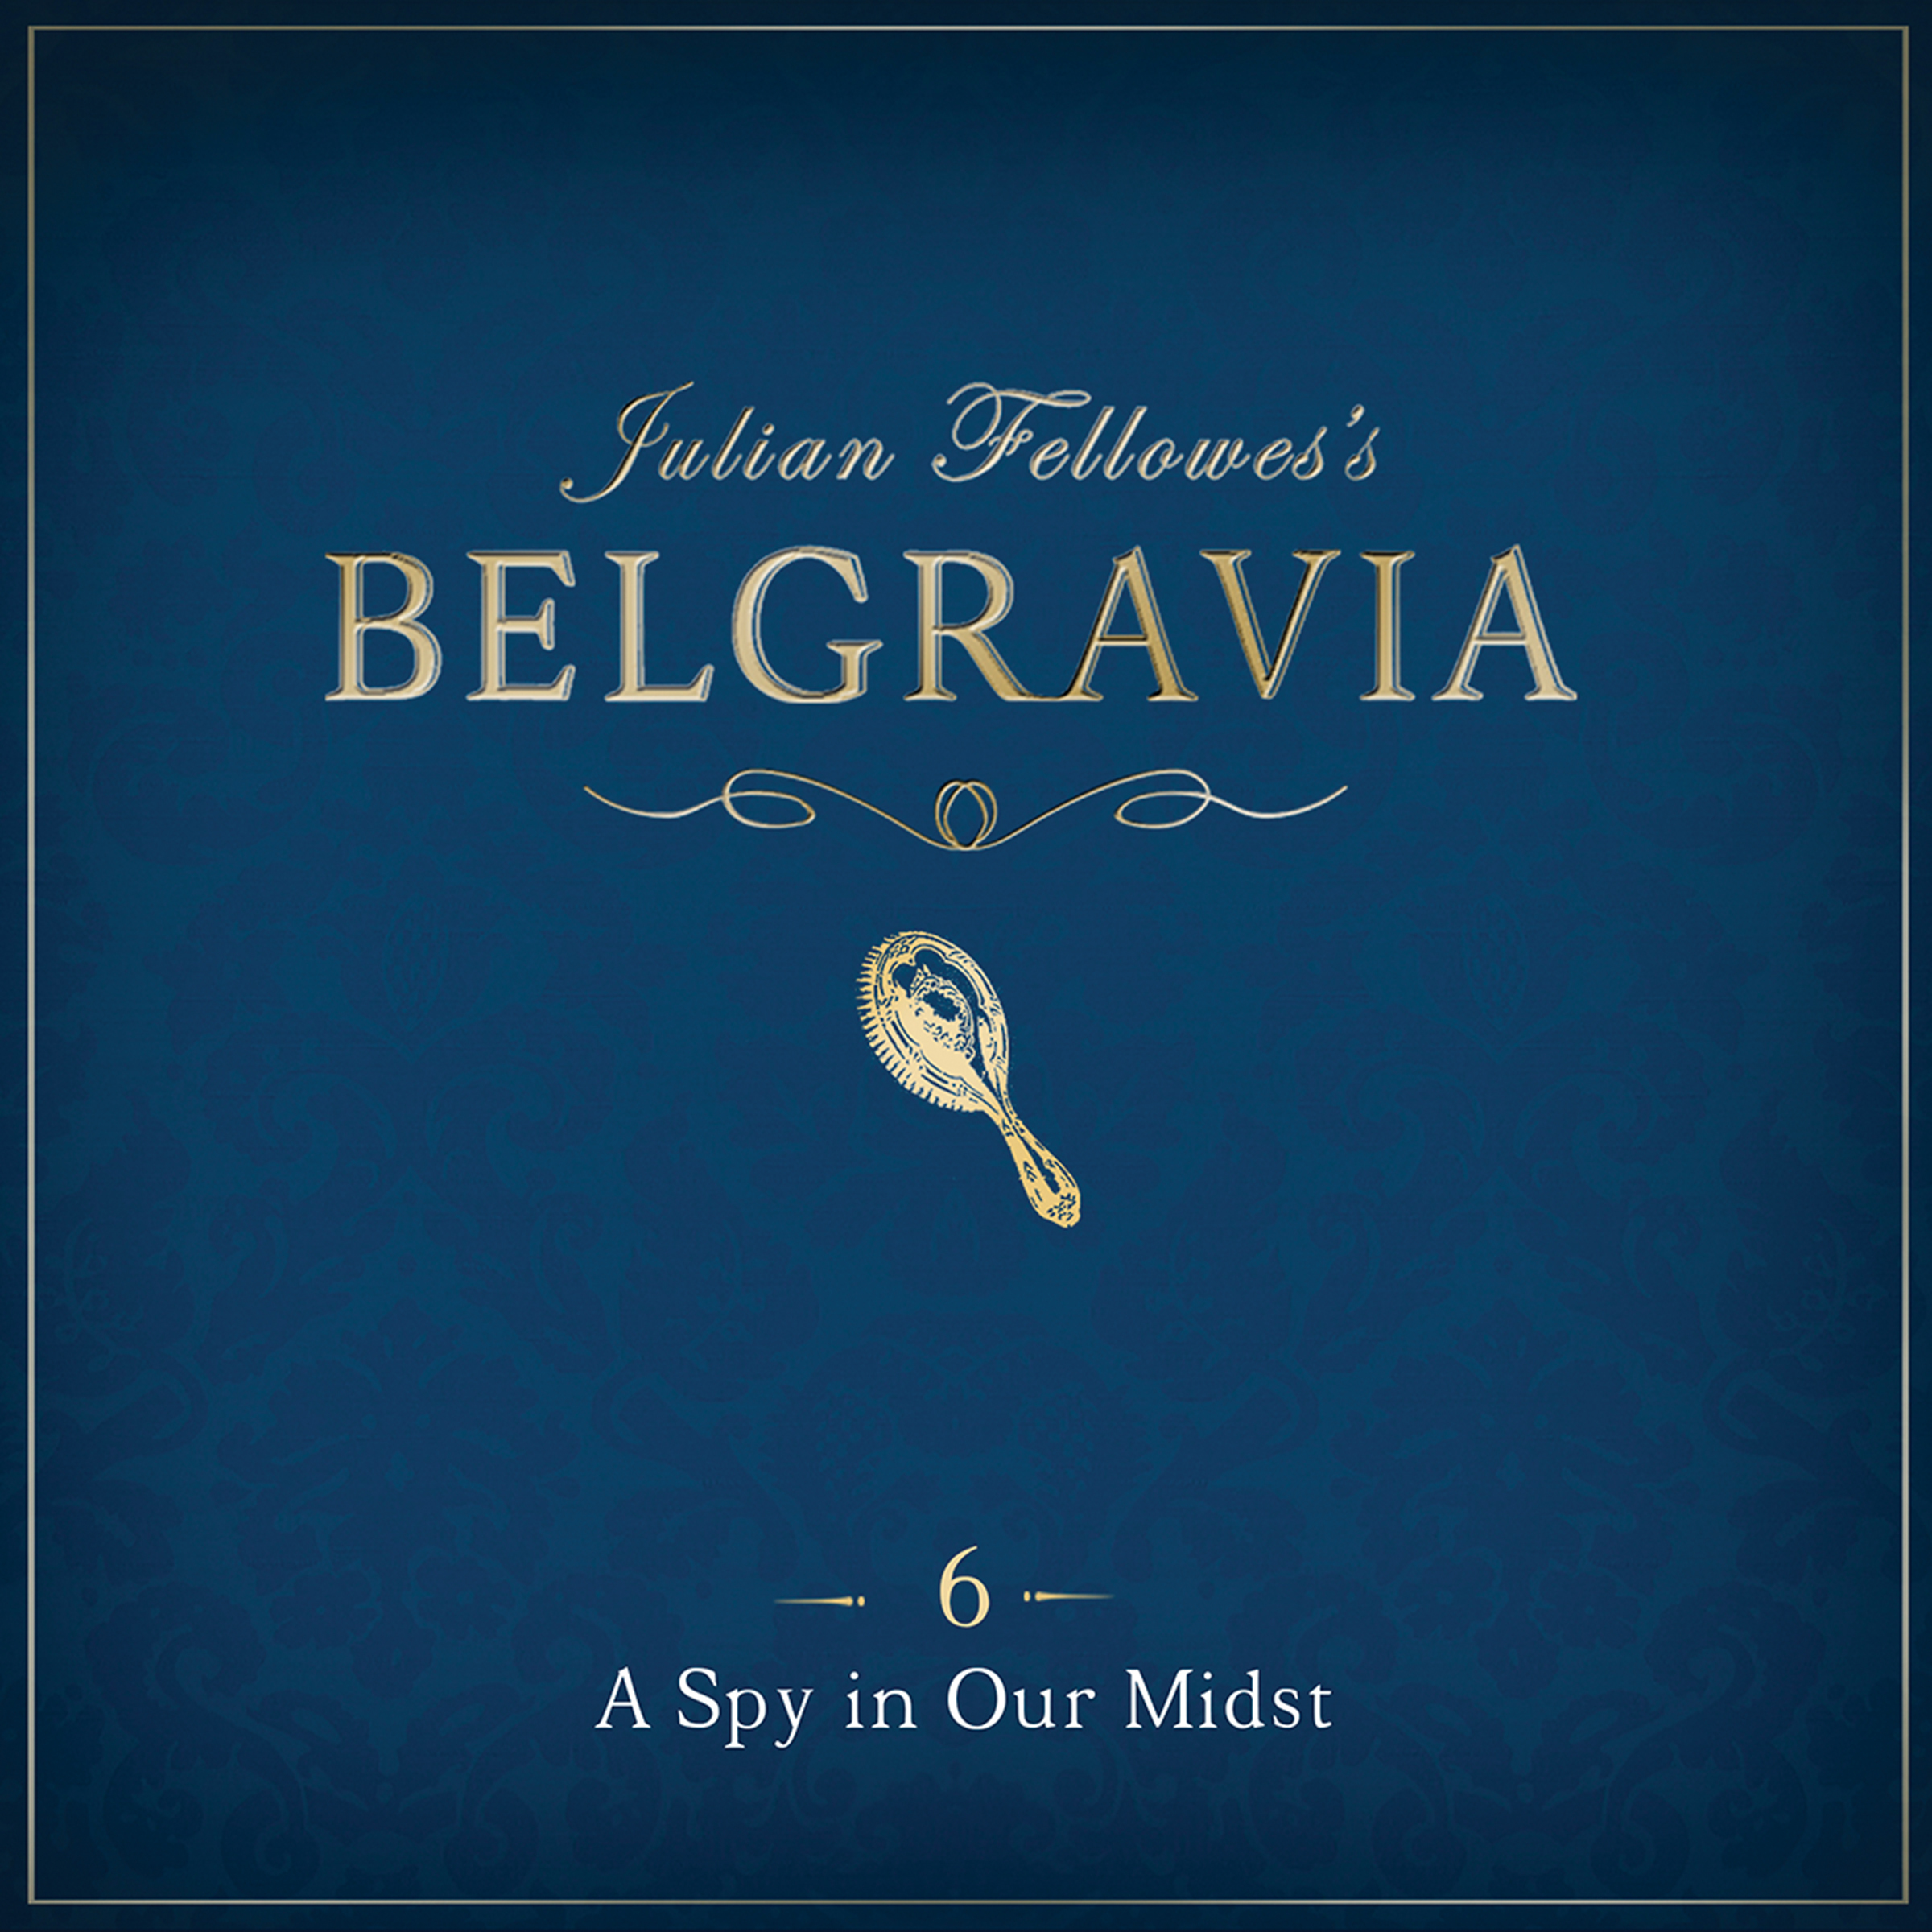 Printable Julian Fellowes's Belgravia Episode 6: A Spy in our Midst Audiobook Cover Art